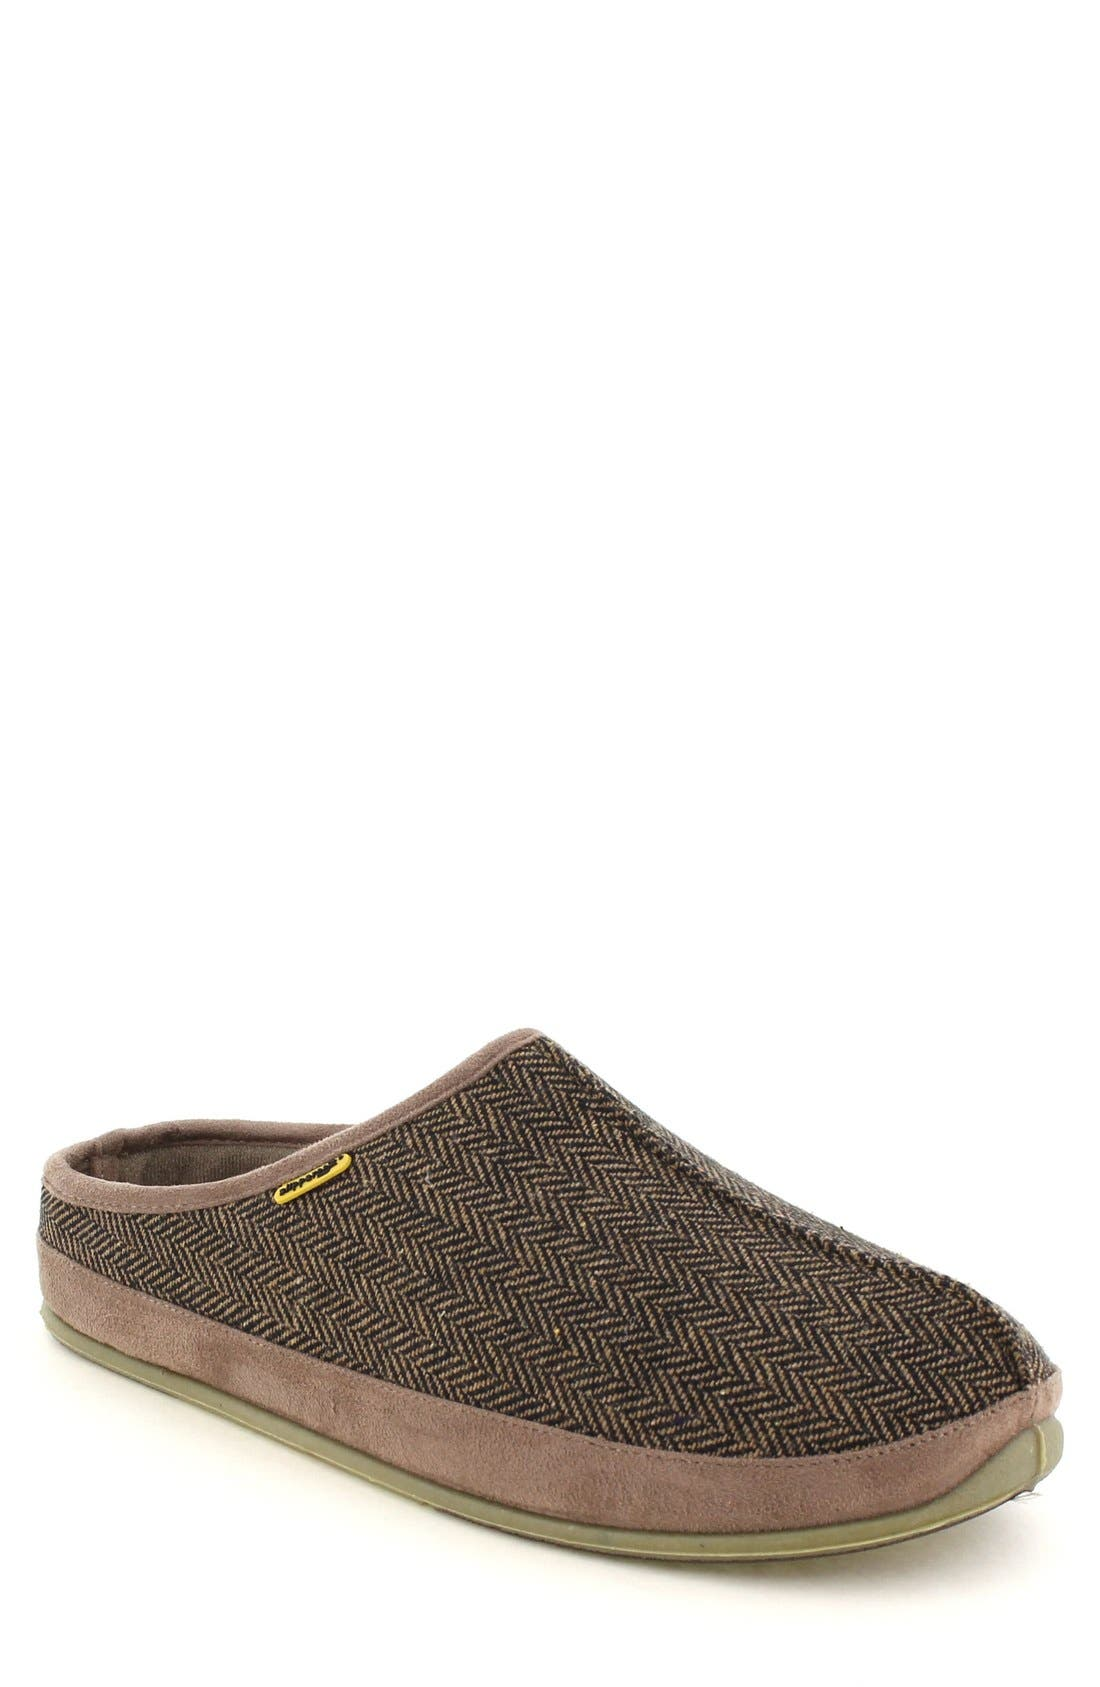 DEER STAGS 'Wherever' Slipper